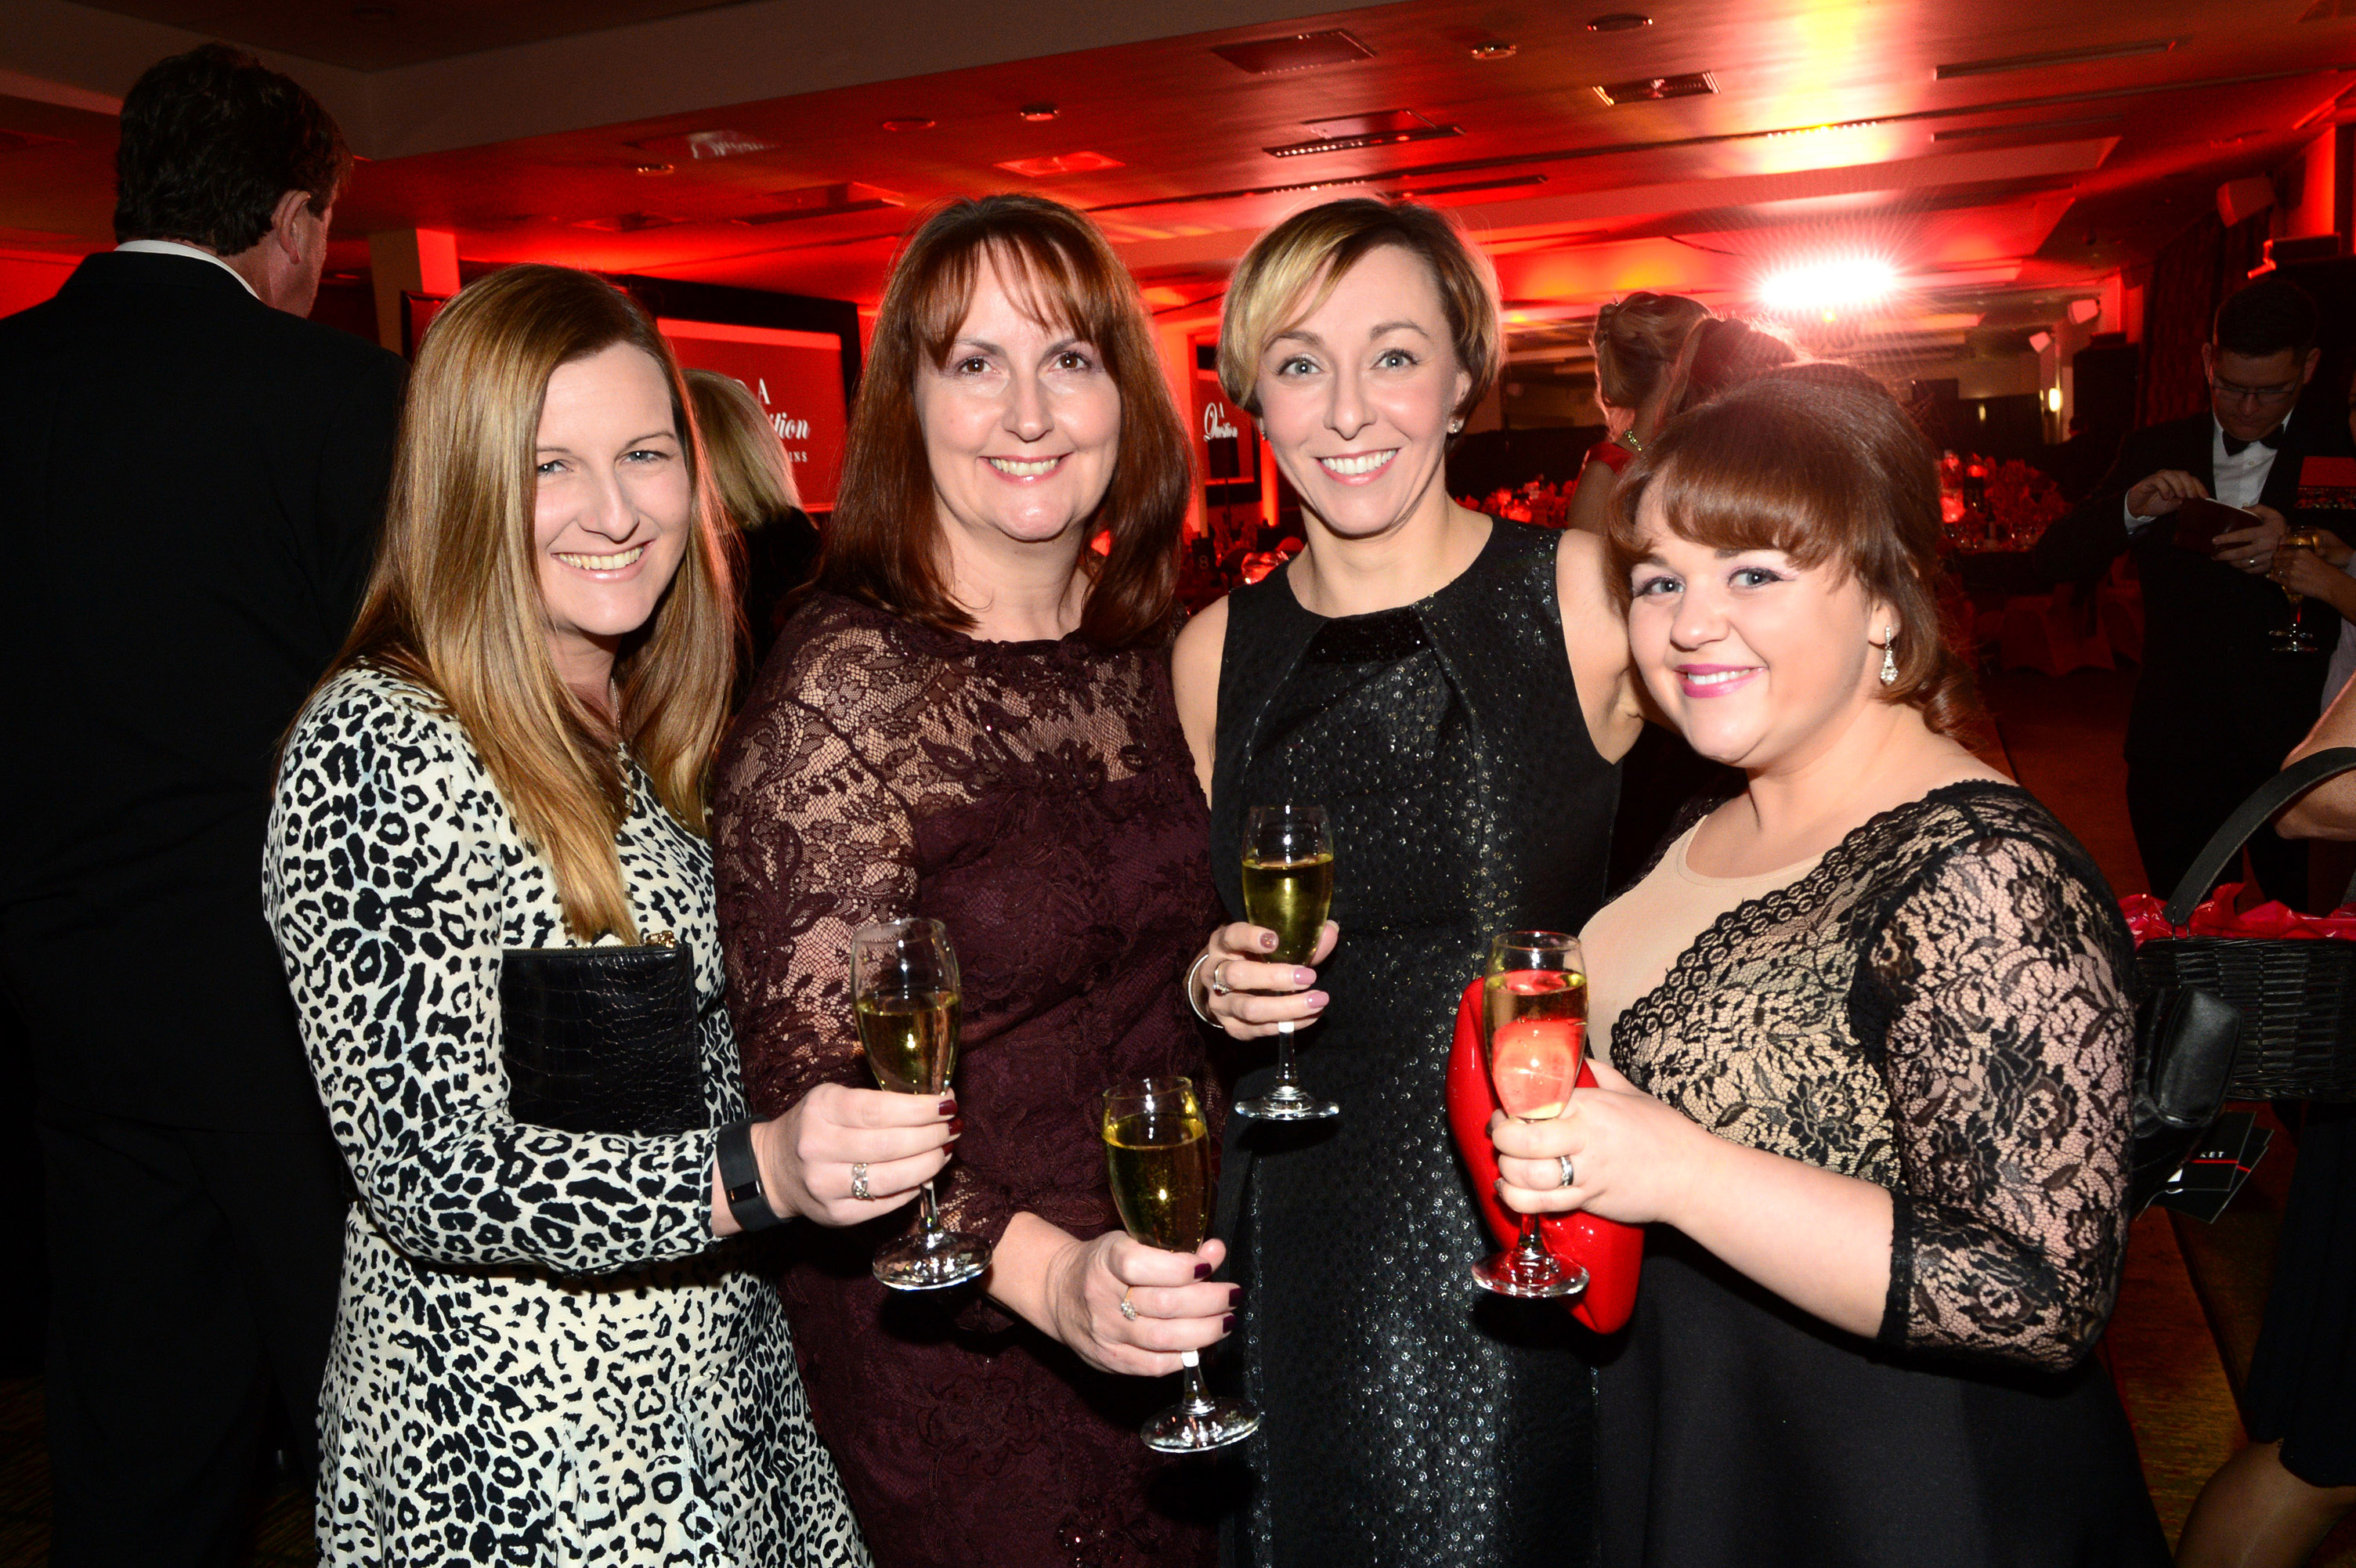 656456-03 : ©Lionel Heap : 2016 A Question of Brains Charity Evening in Aid of Steps : L-R Lindsey Treharne, Dawn Churchley, Lesley Westwood and Sarah Francis.